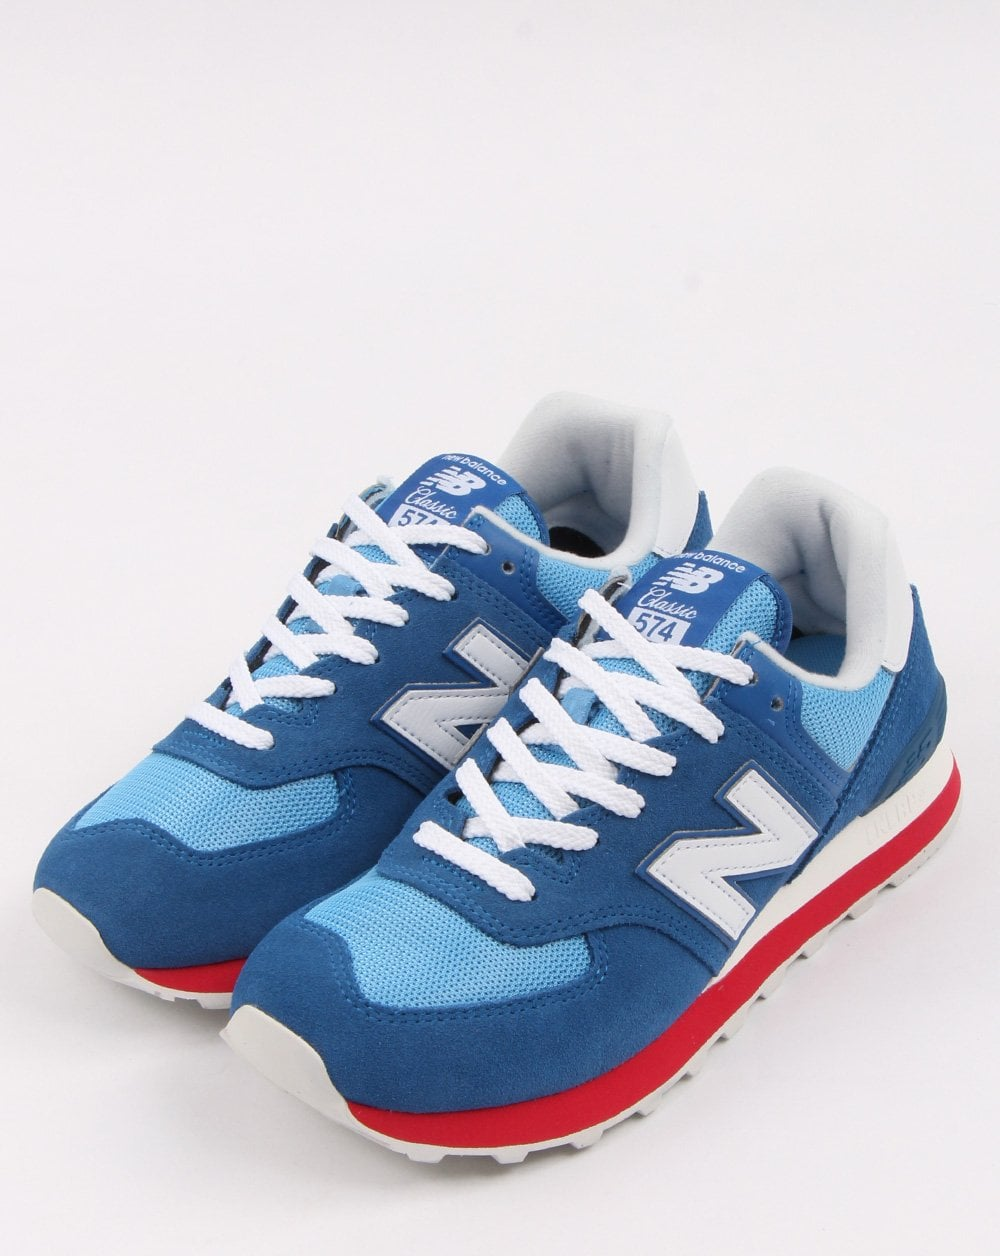 super popular cedac 6d97d New Balance 574 Trainers Blue/white